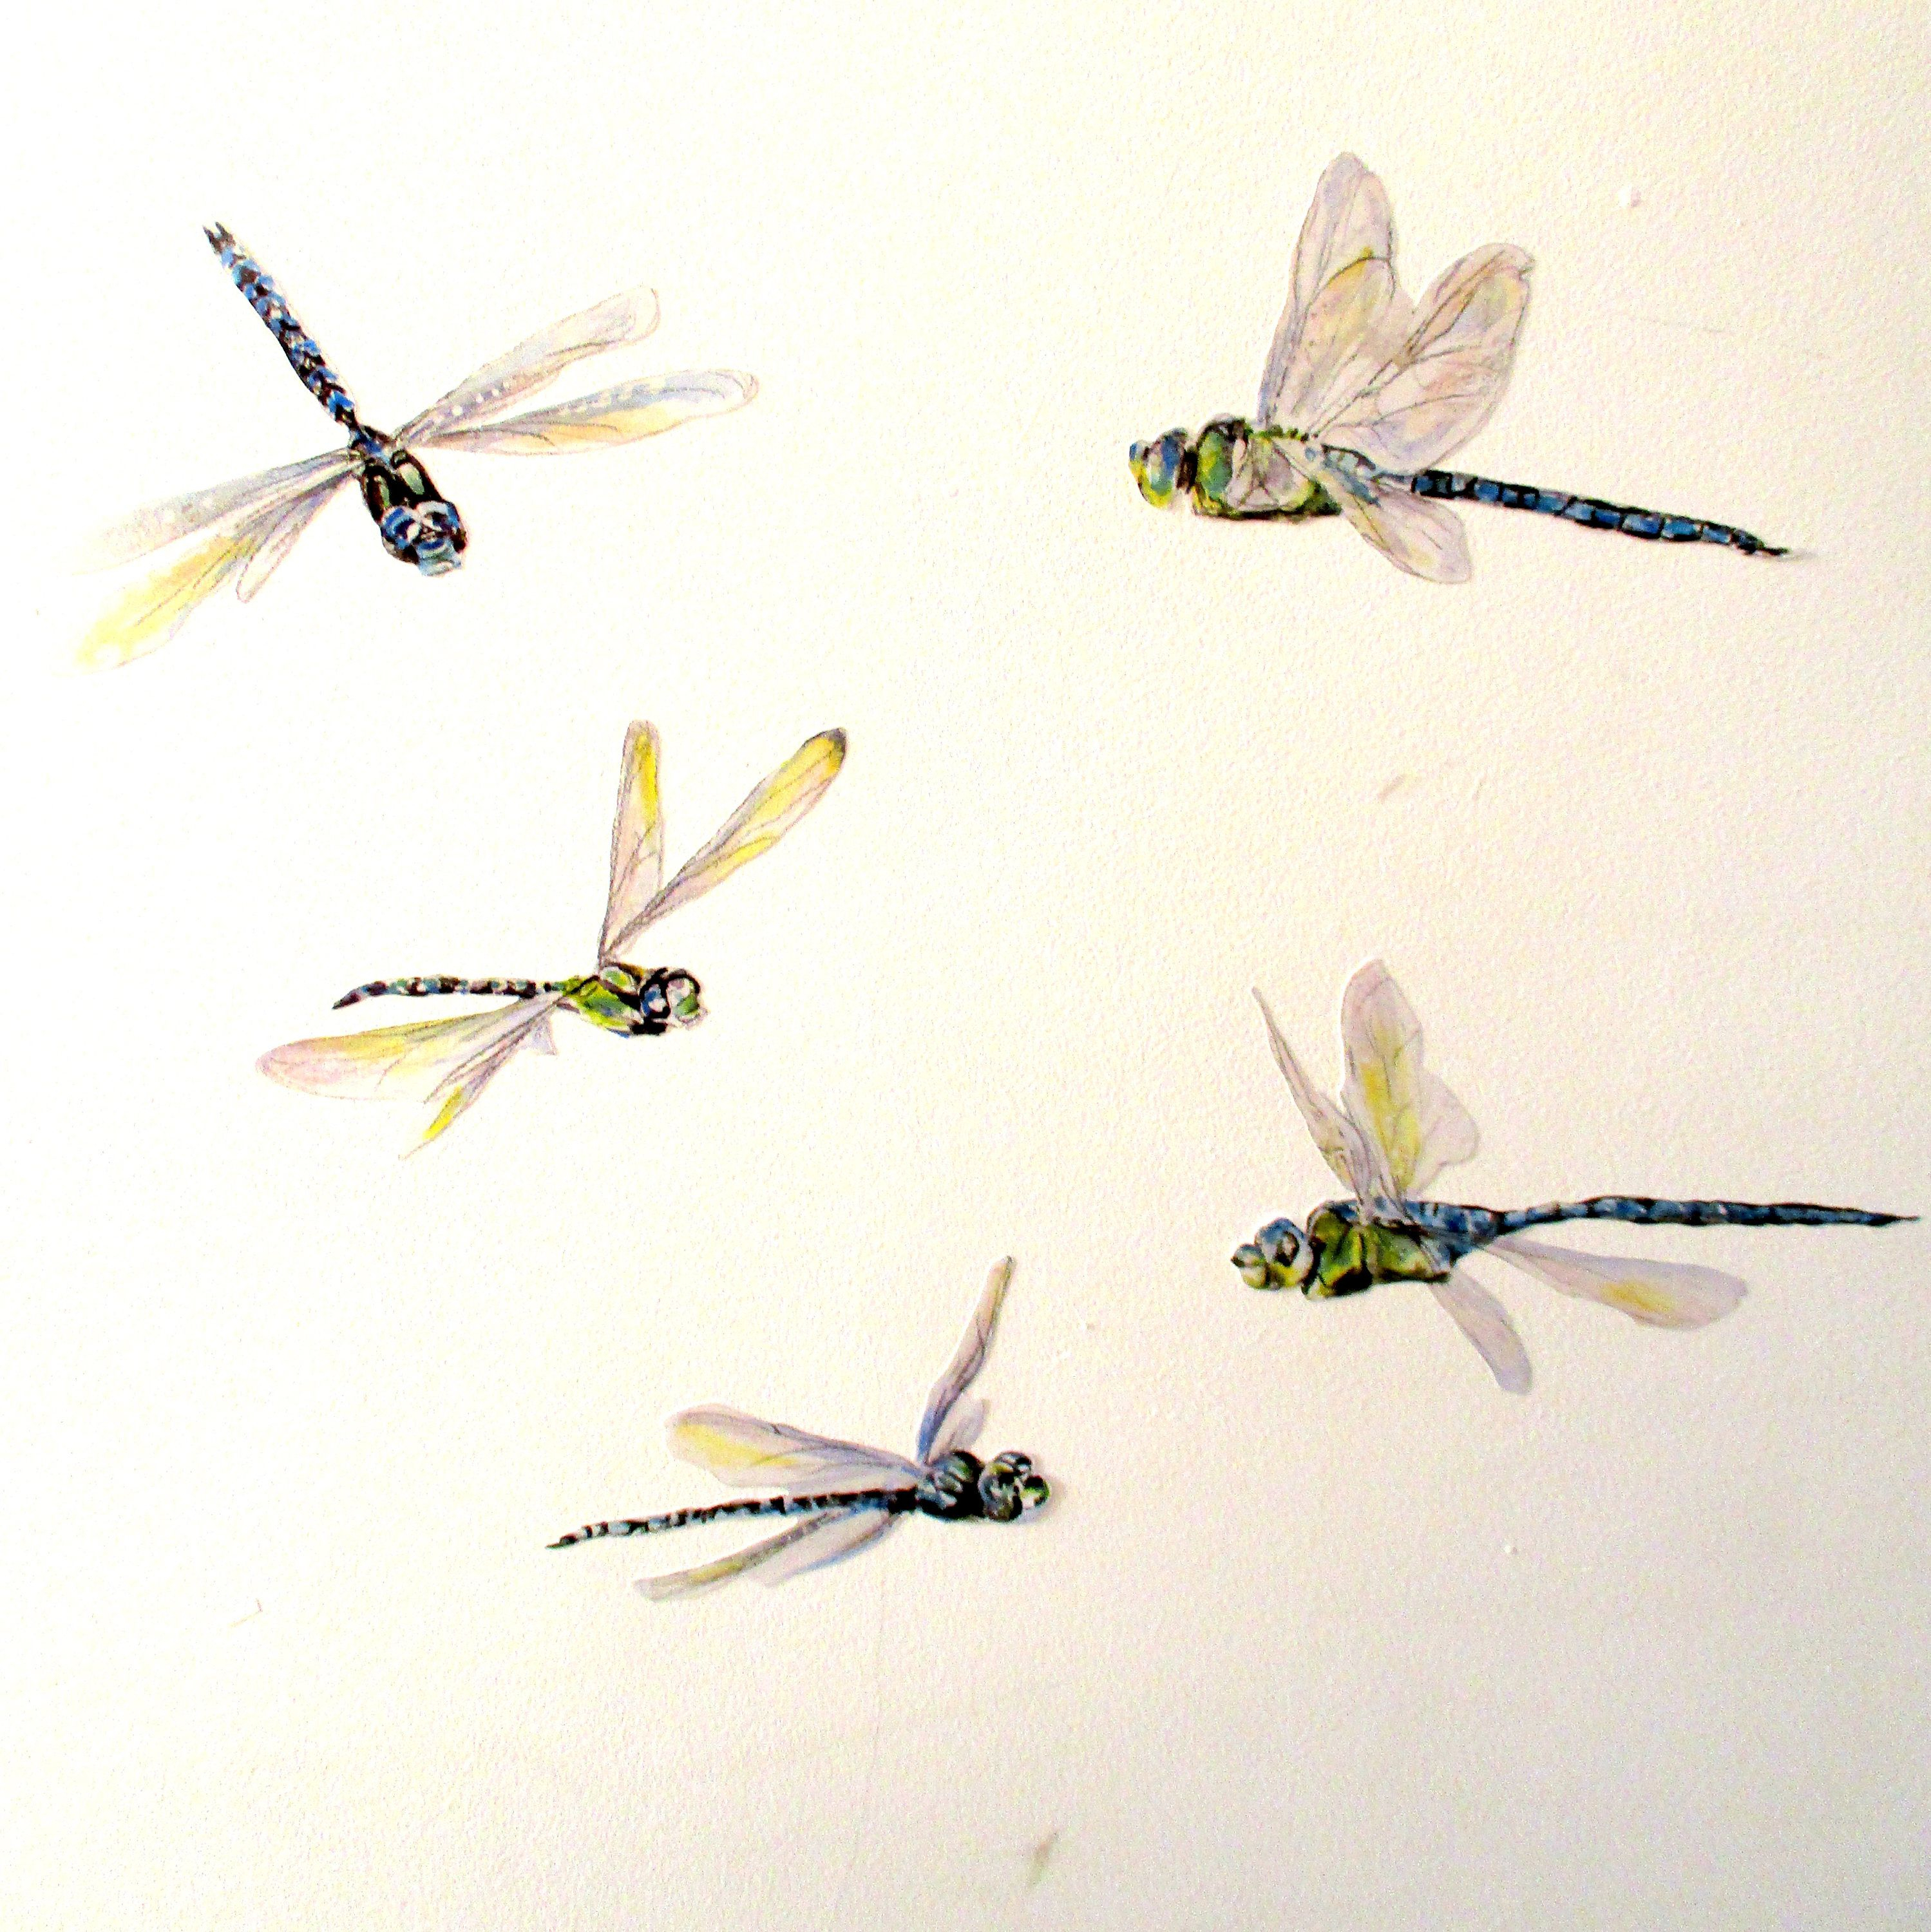 Dragonfly Wall Stickers, Dragonfly Decals, Watercolor Within Dragonfly Wall Decor (Gallery 14 of 30)